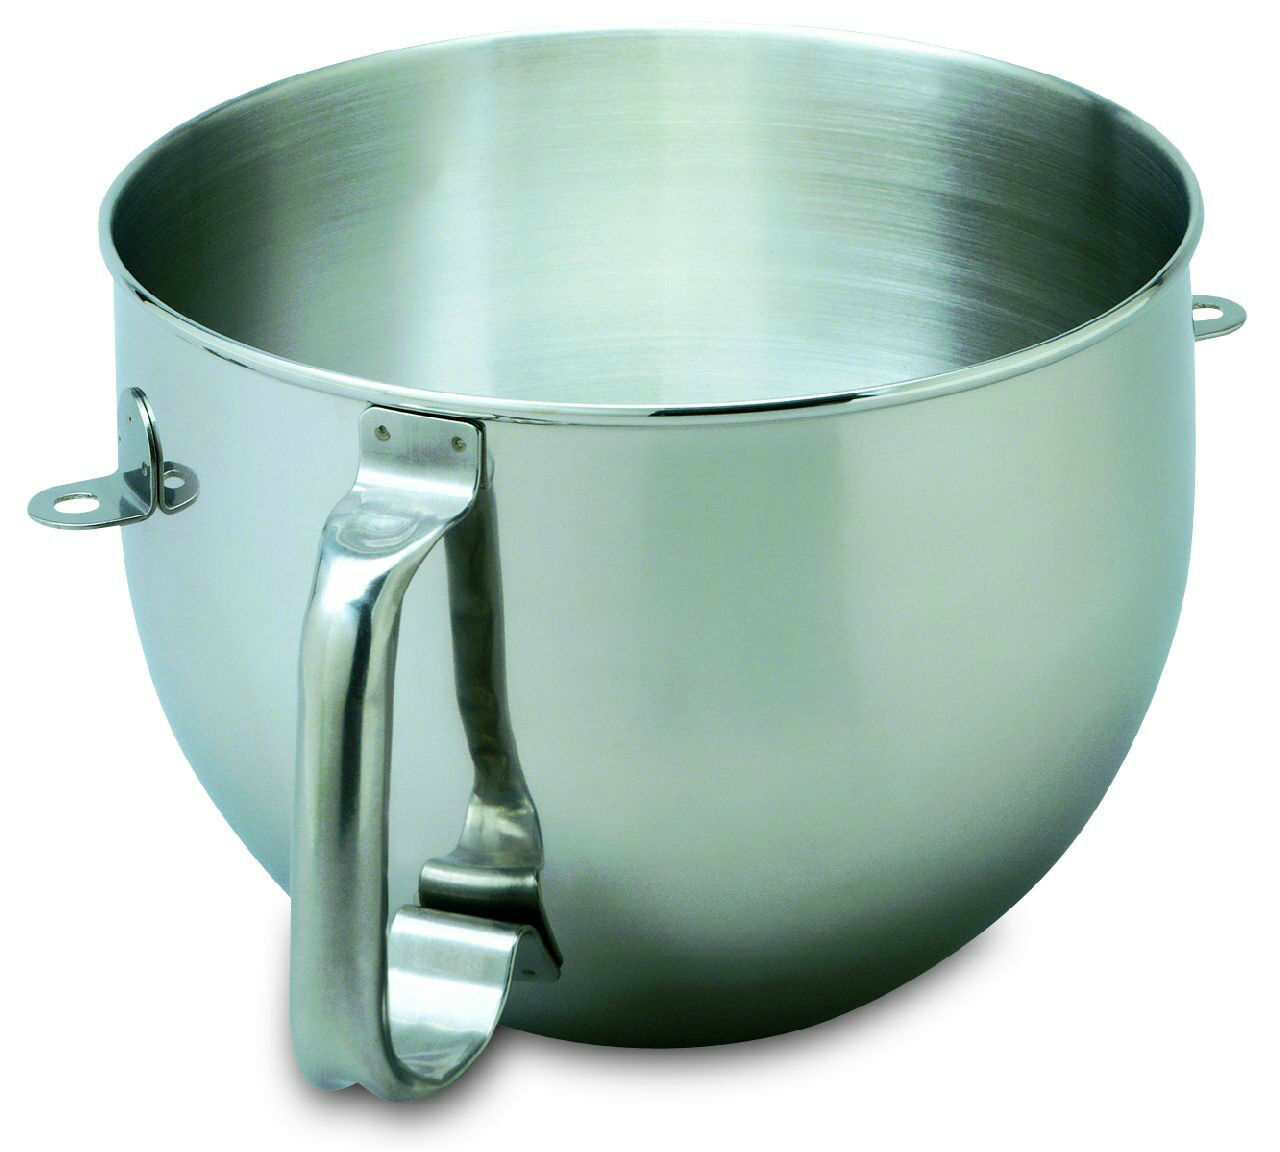 NEW KITCHENAID BOWL for Stand Mixer 6-QT Stainless Steel KN2B6PEH ...